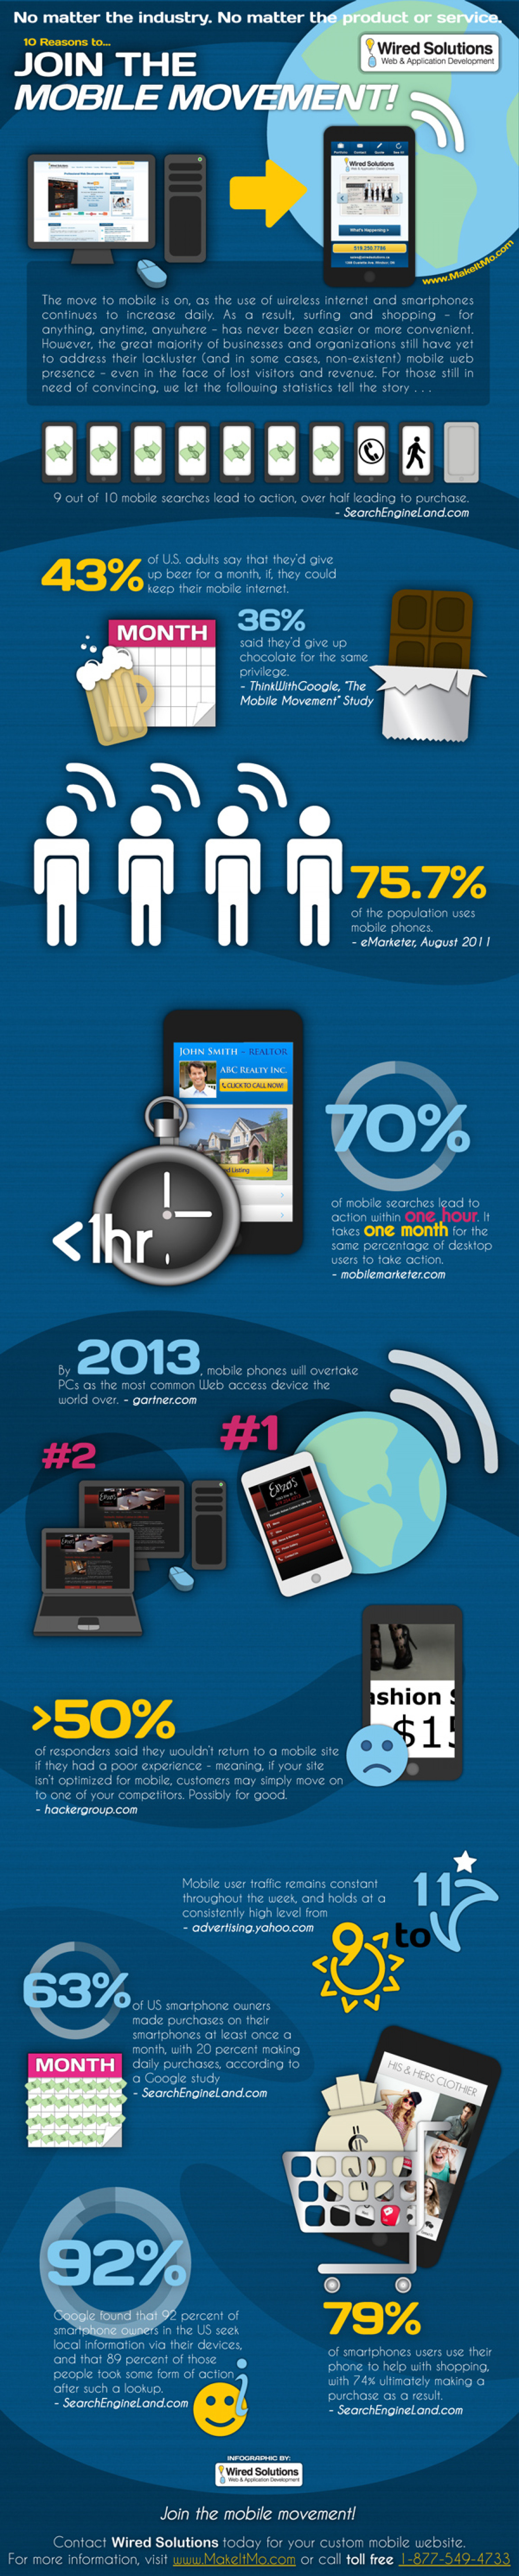 Join the Mobile Movement Infographic